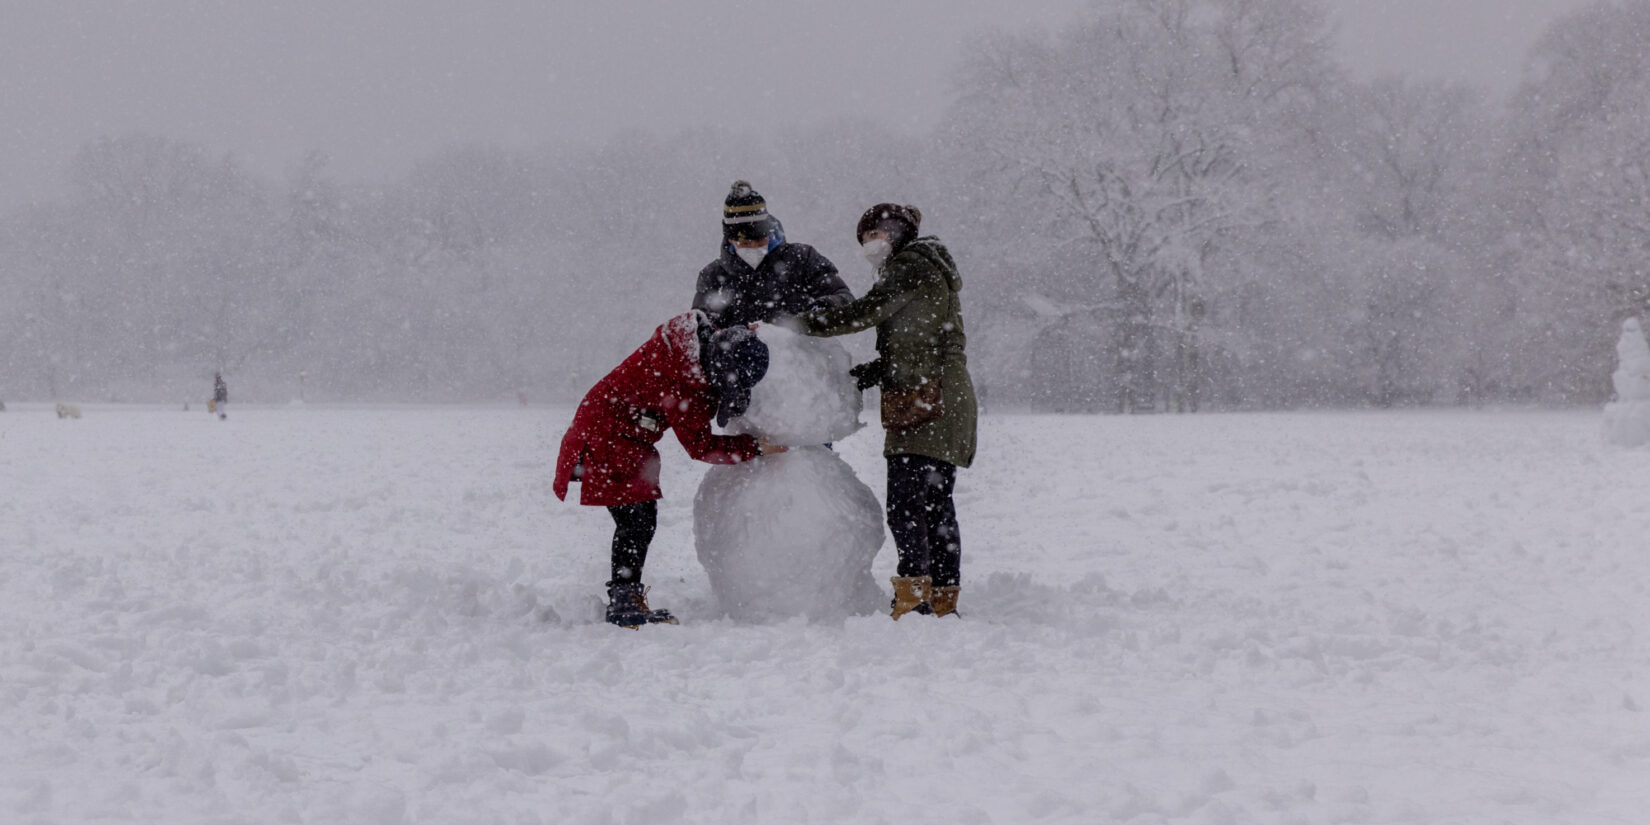 Three parkgoers building a snowman in the middle of a blizzard.